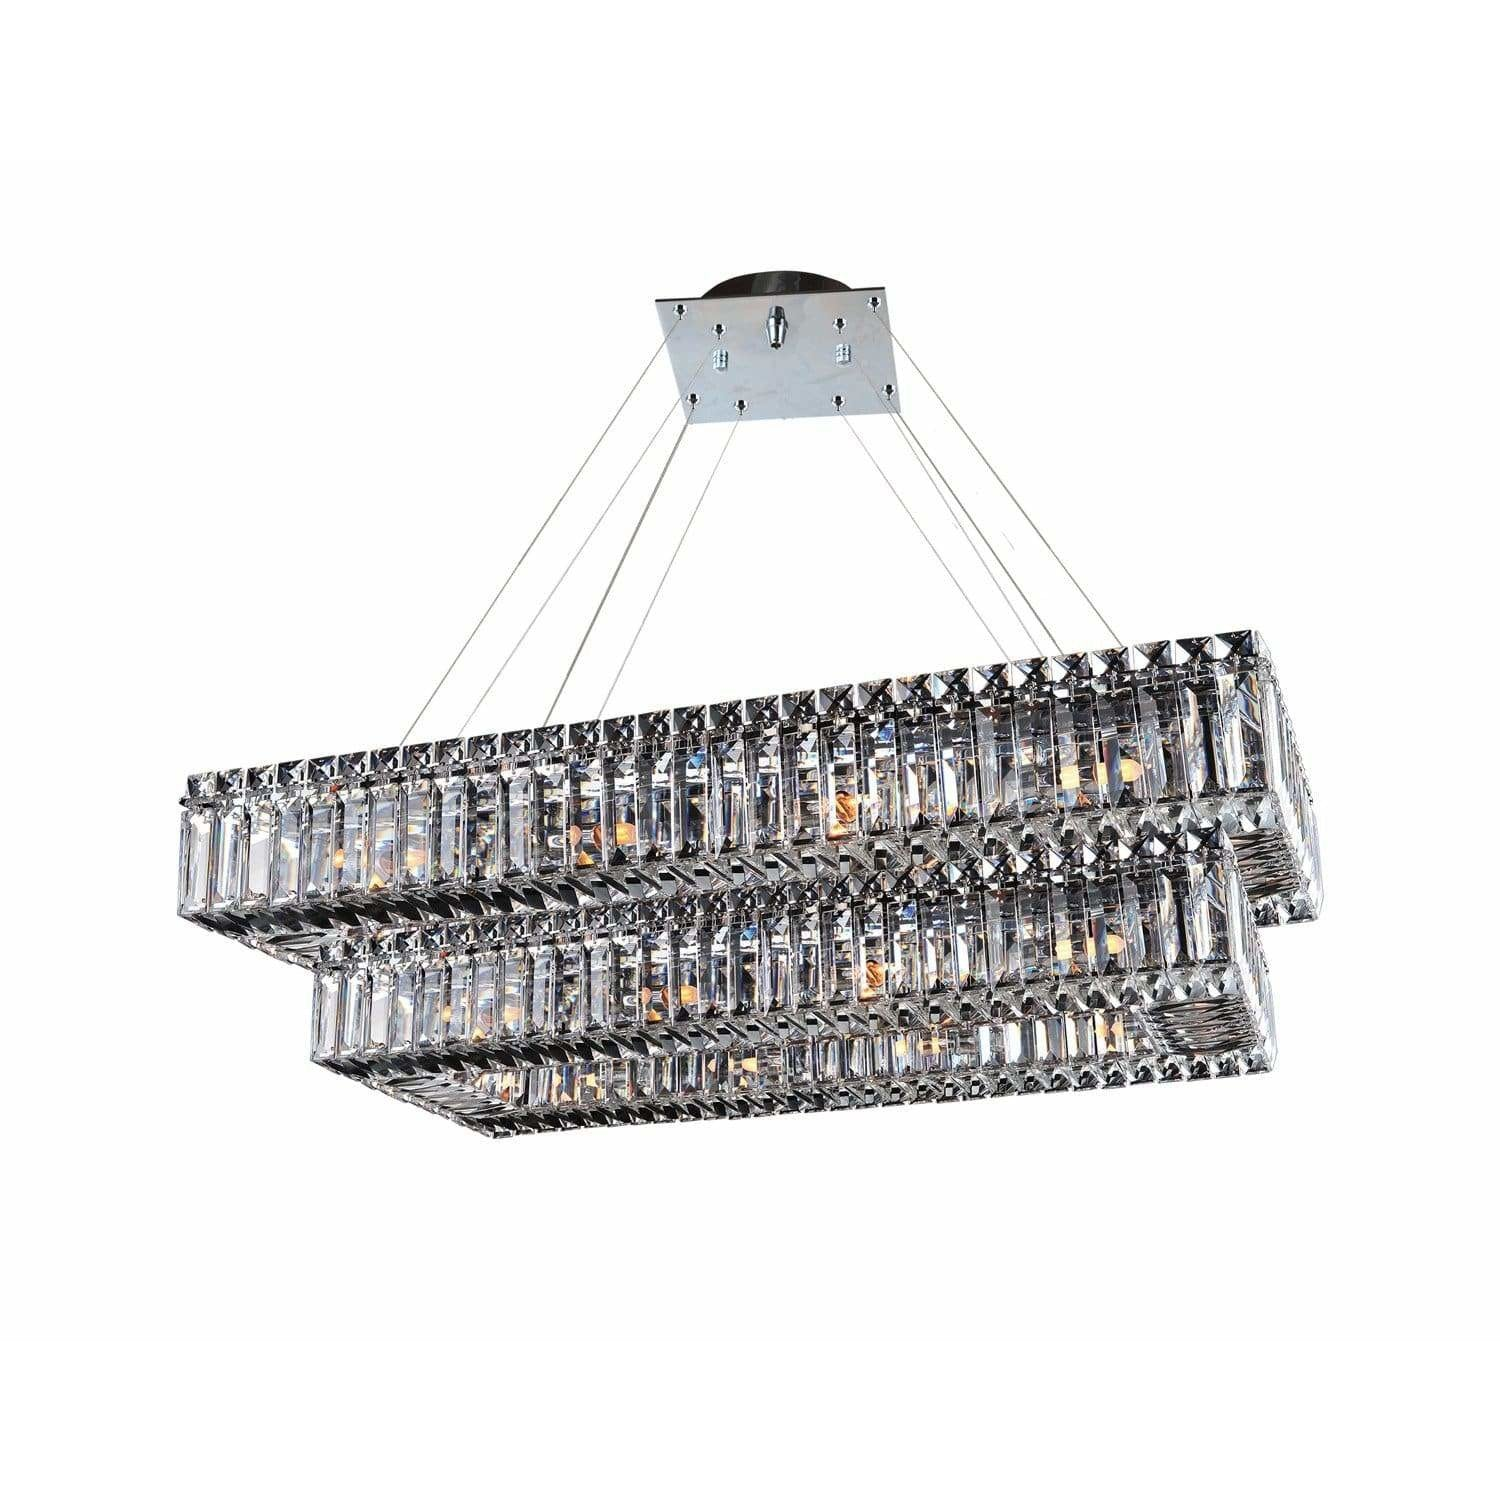 Allegri by Kalco Lighting Pendants Chrome / Firenze Clear Baguette 43 Inch Rectangular 2 Tier Pendant From Allegri by Kalco Lighting 11778